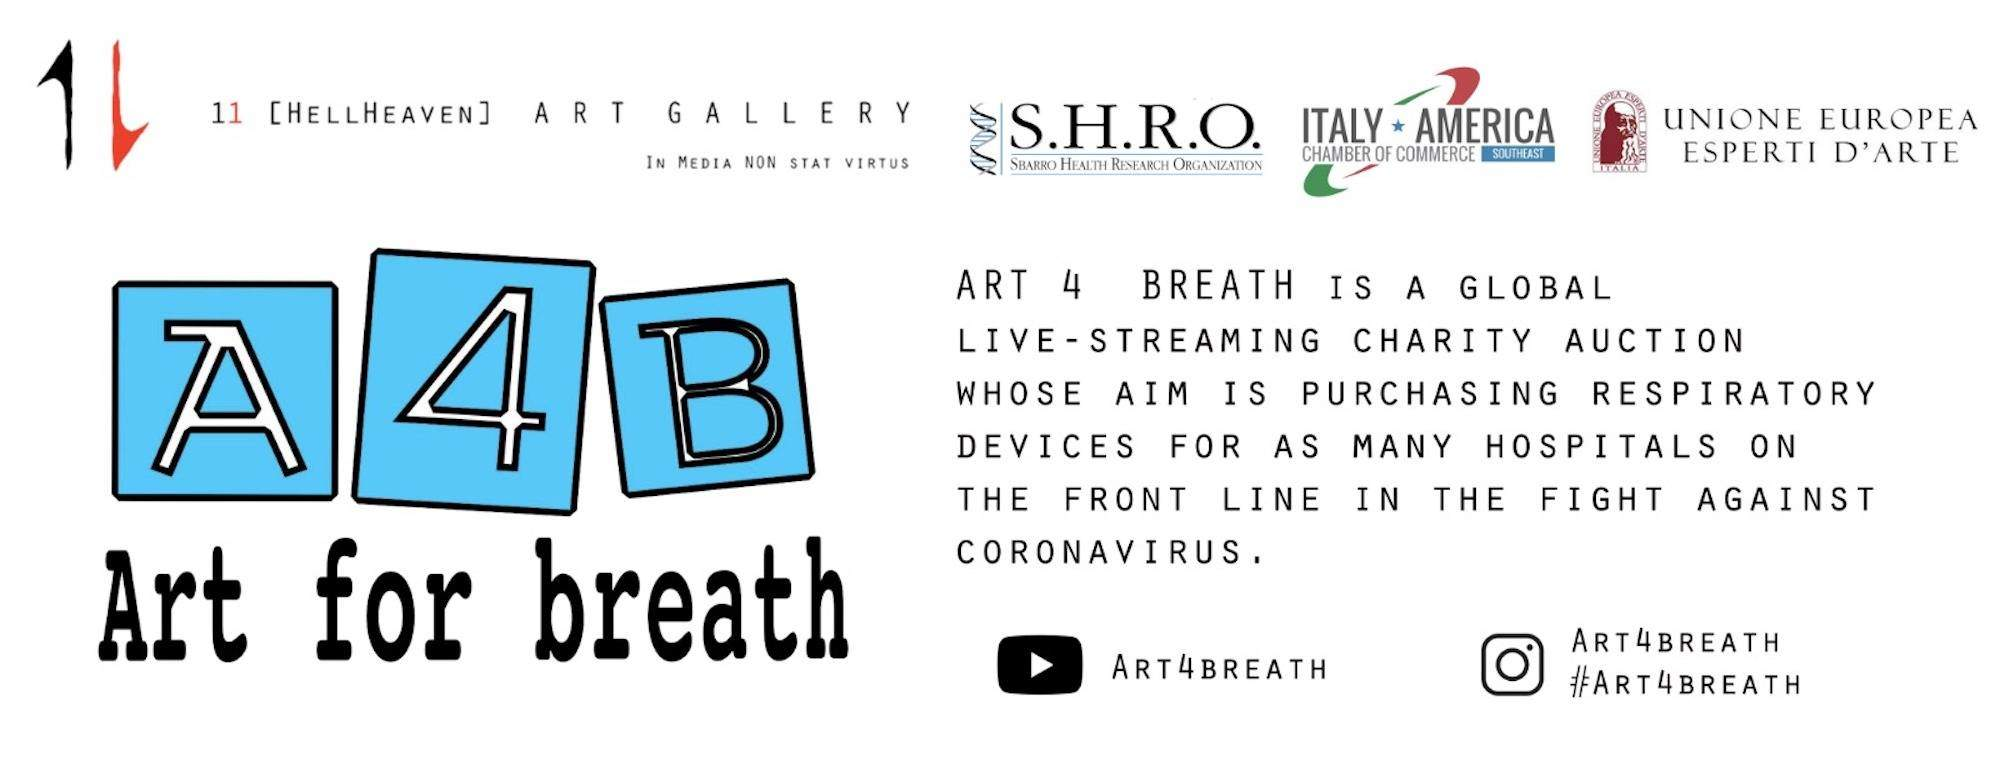 ART FOR BREATH